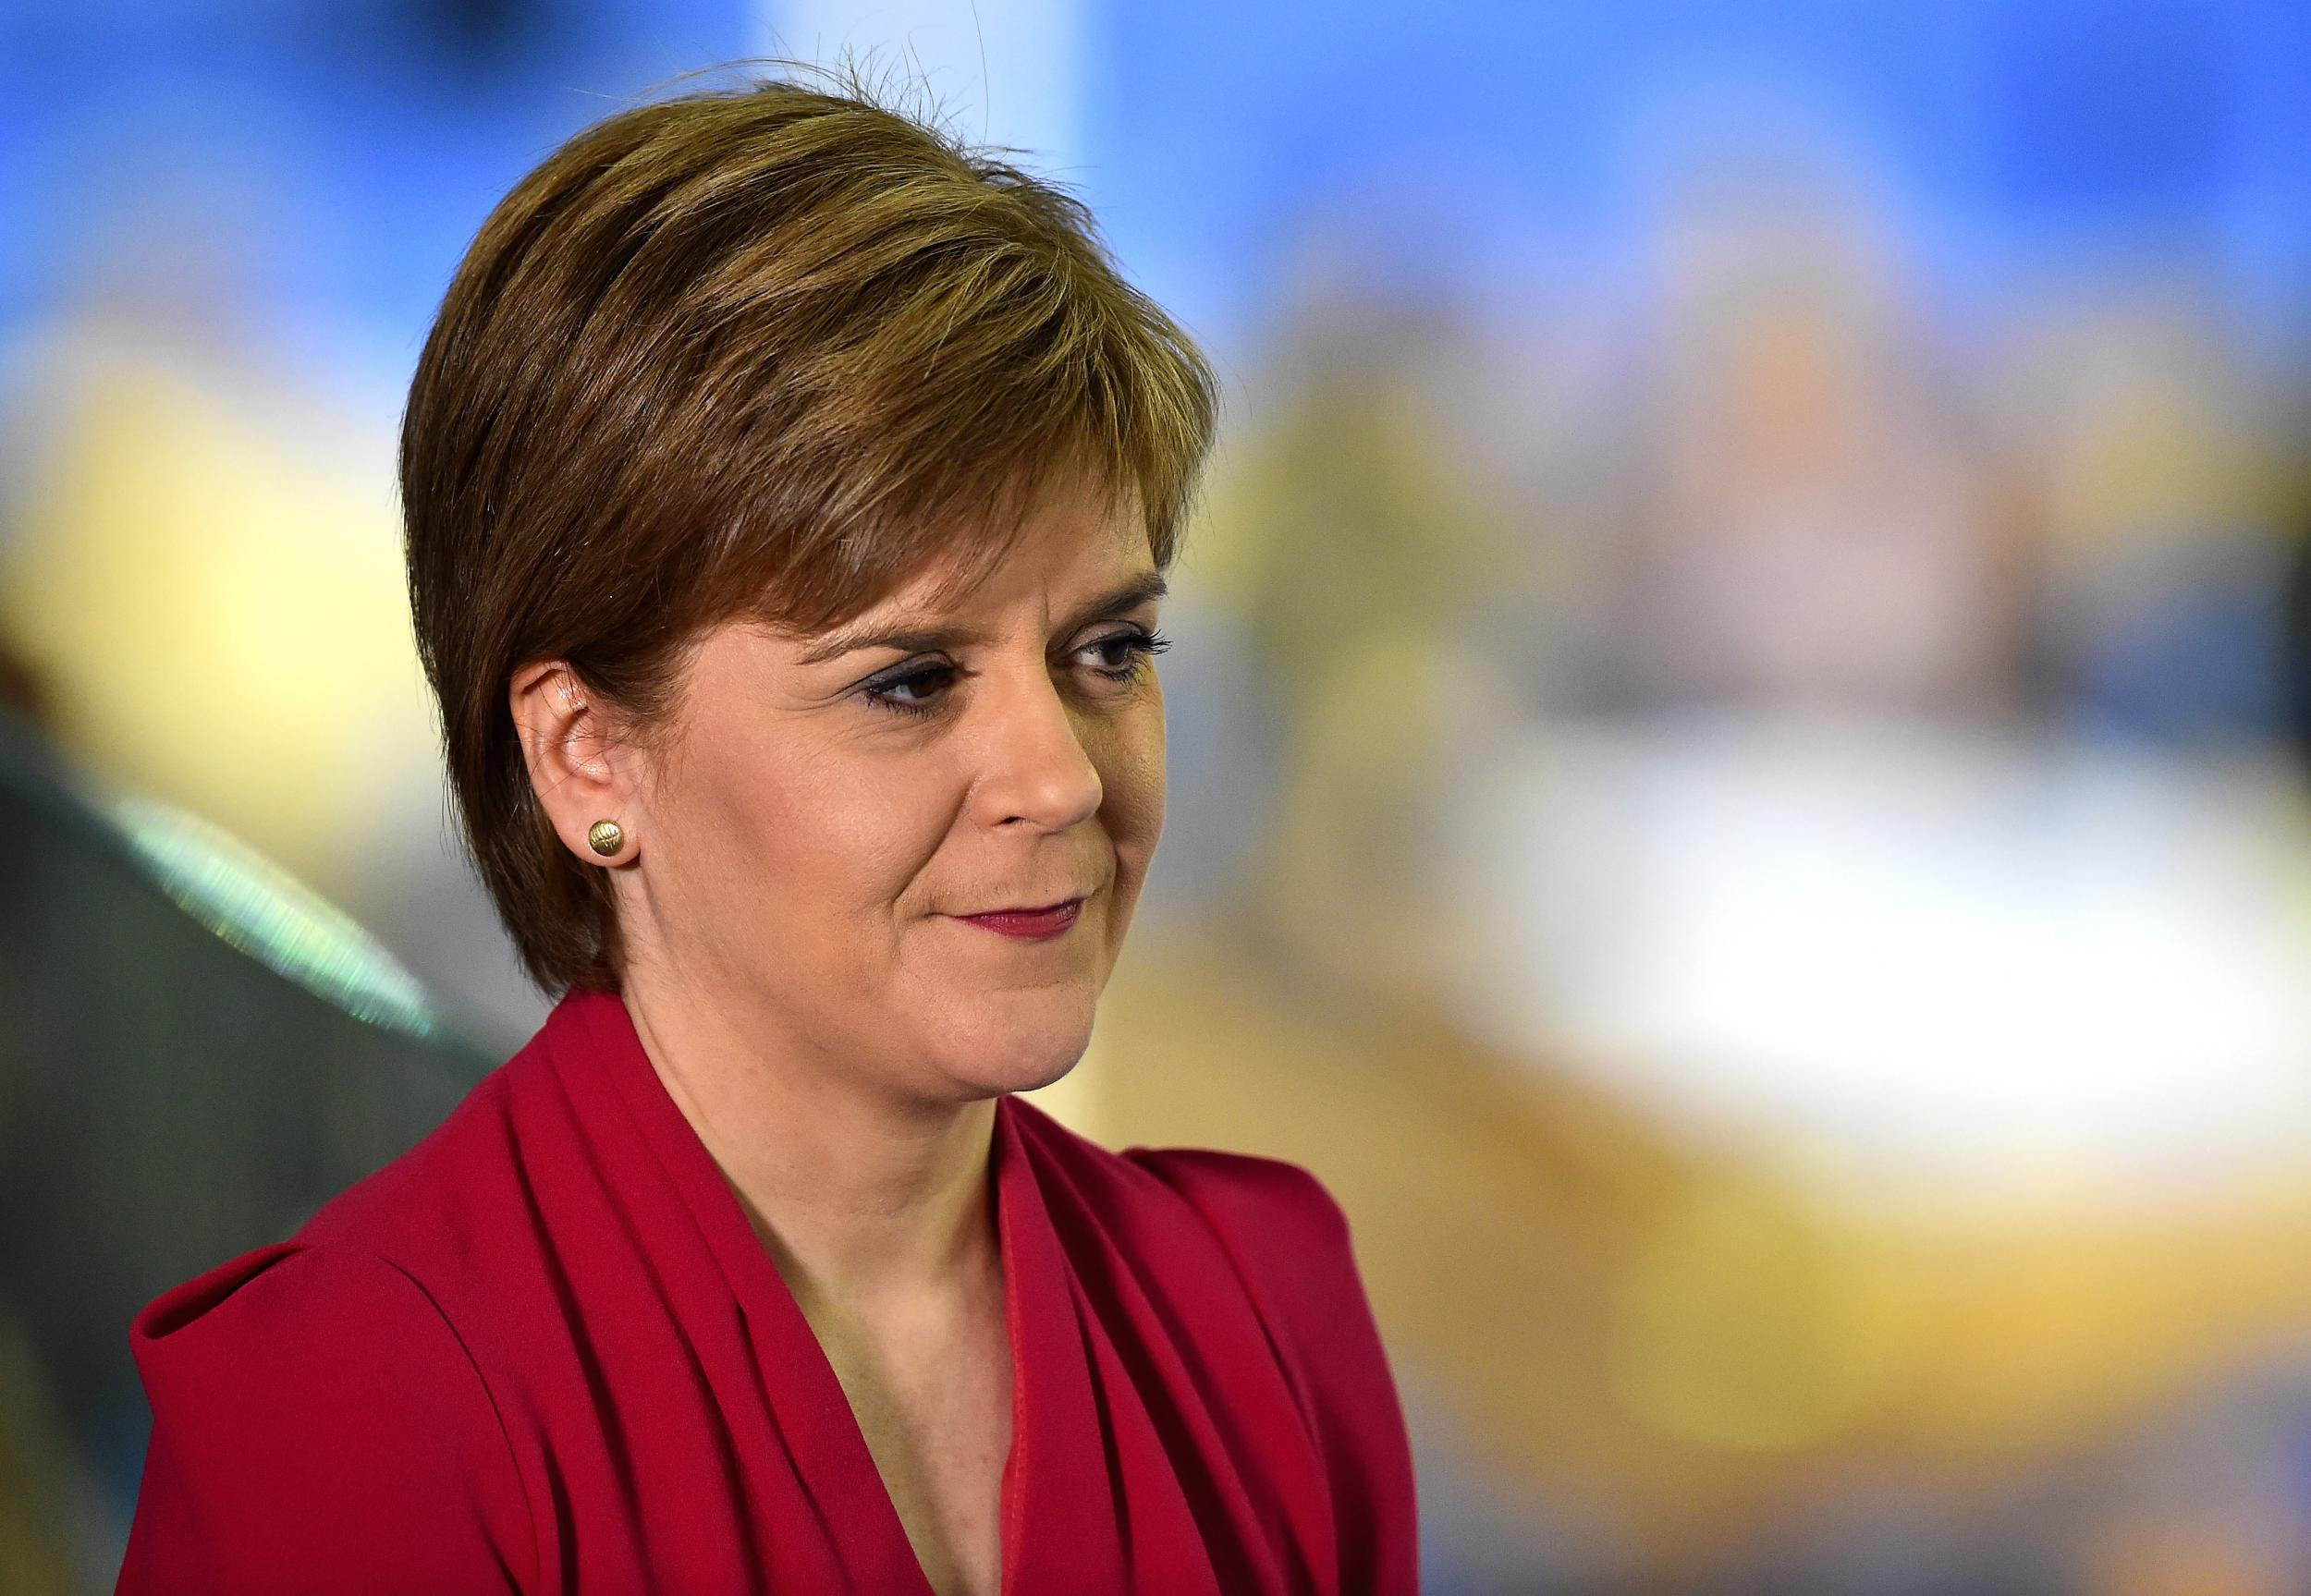 Nicola Sturgeon: SNP Leader Opens Up About Suffering From